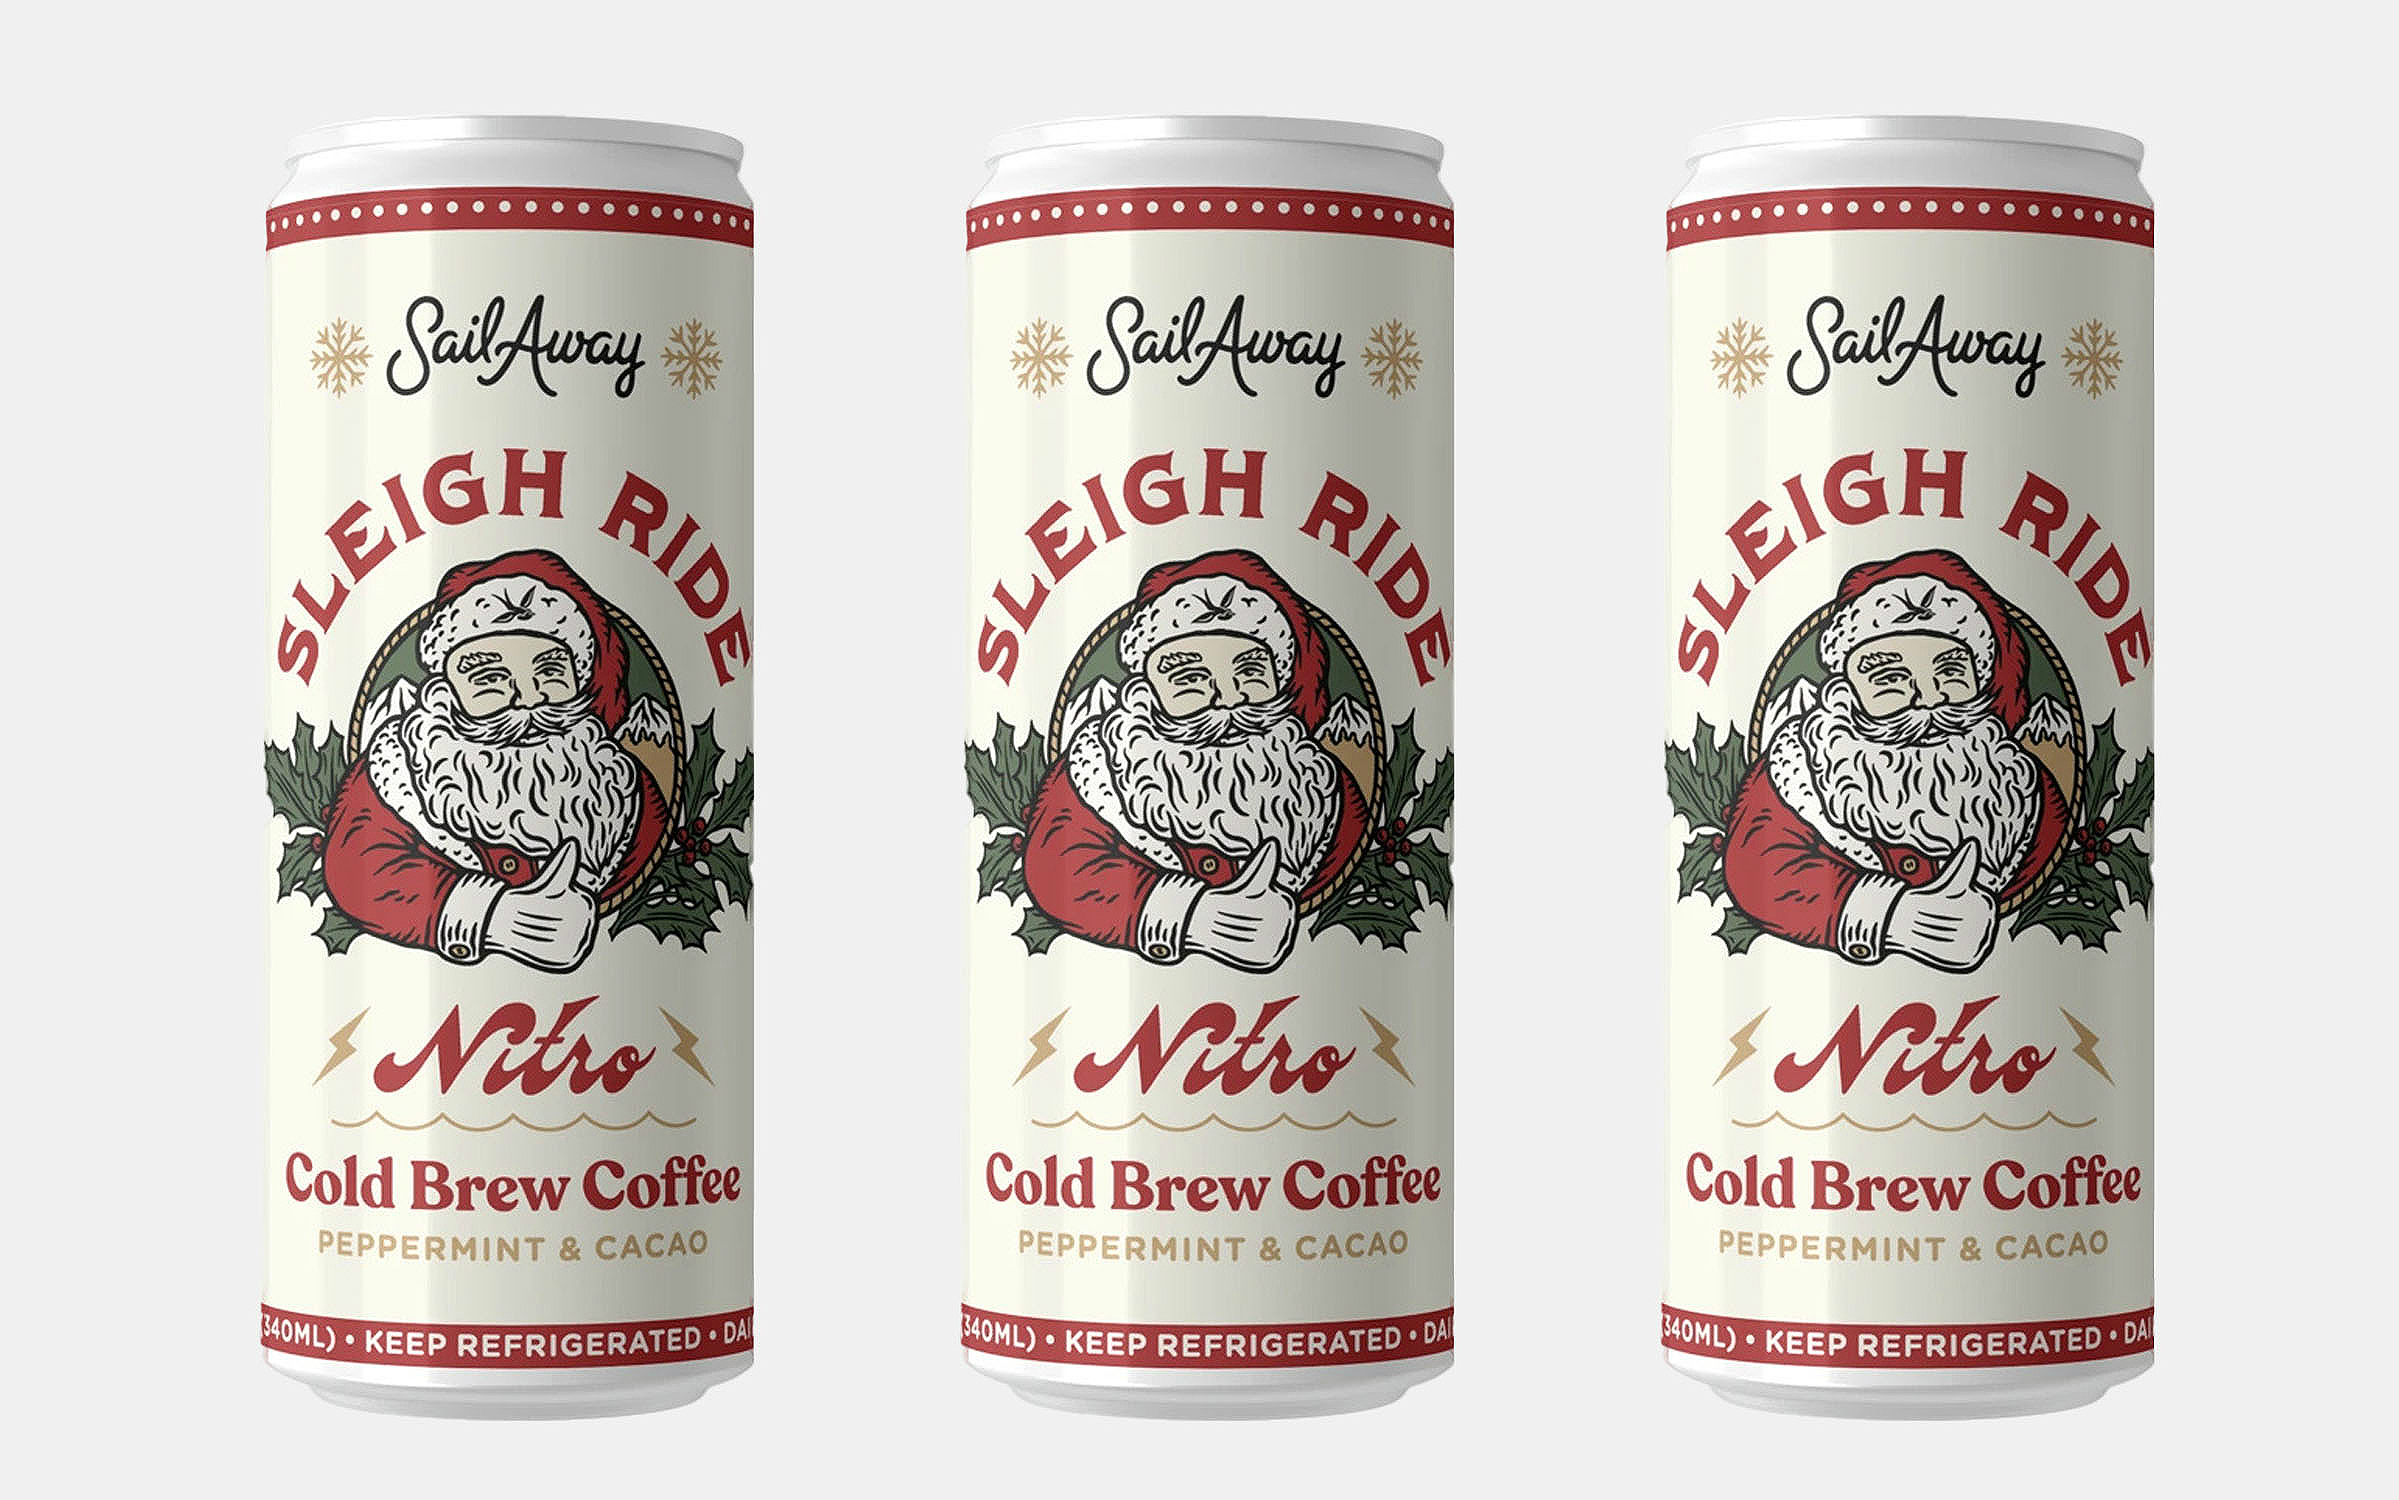 Sail Away Sleigh Ride Nitro Cold Brew Coffee